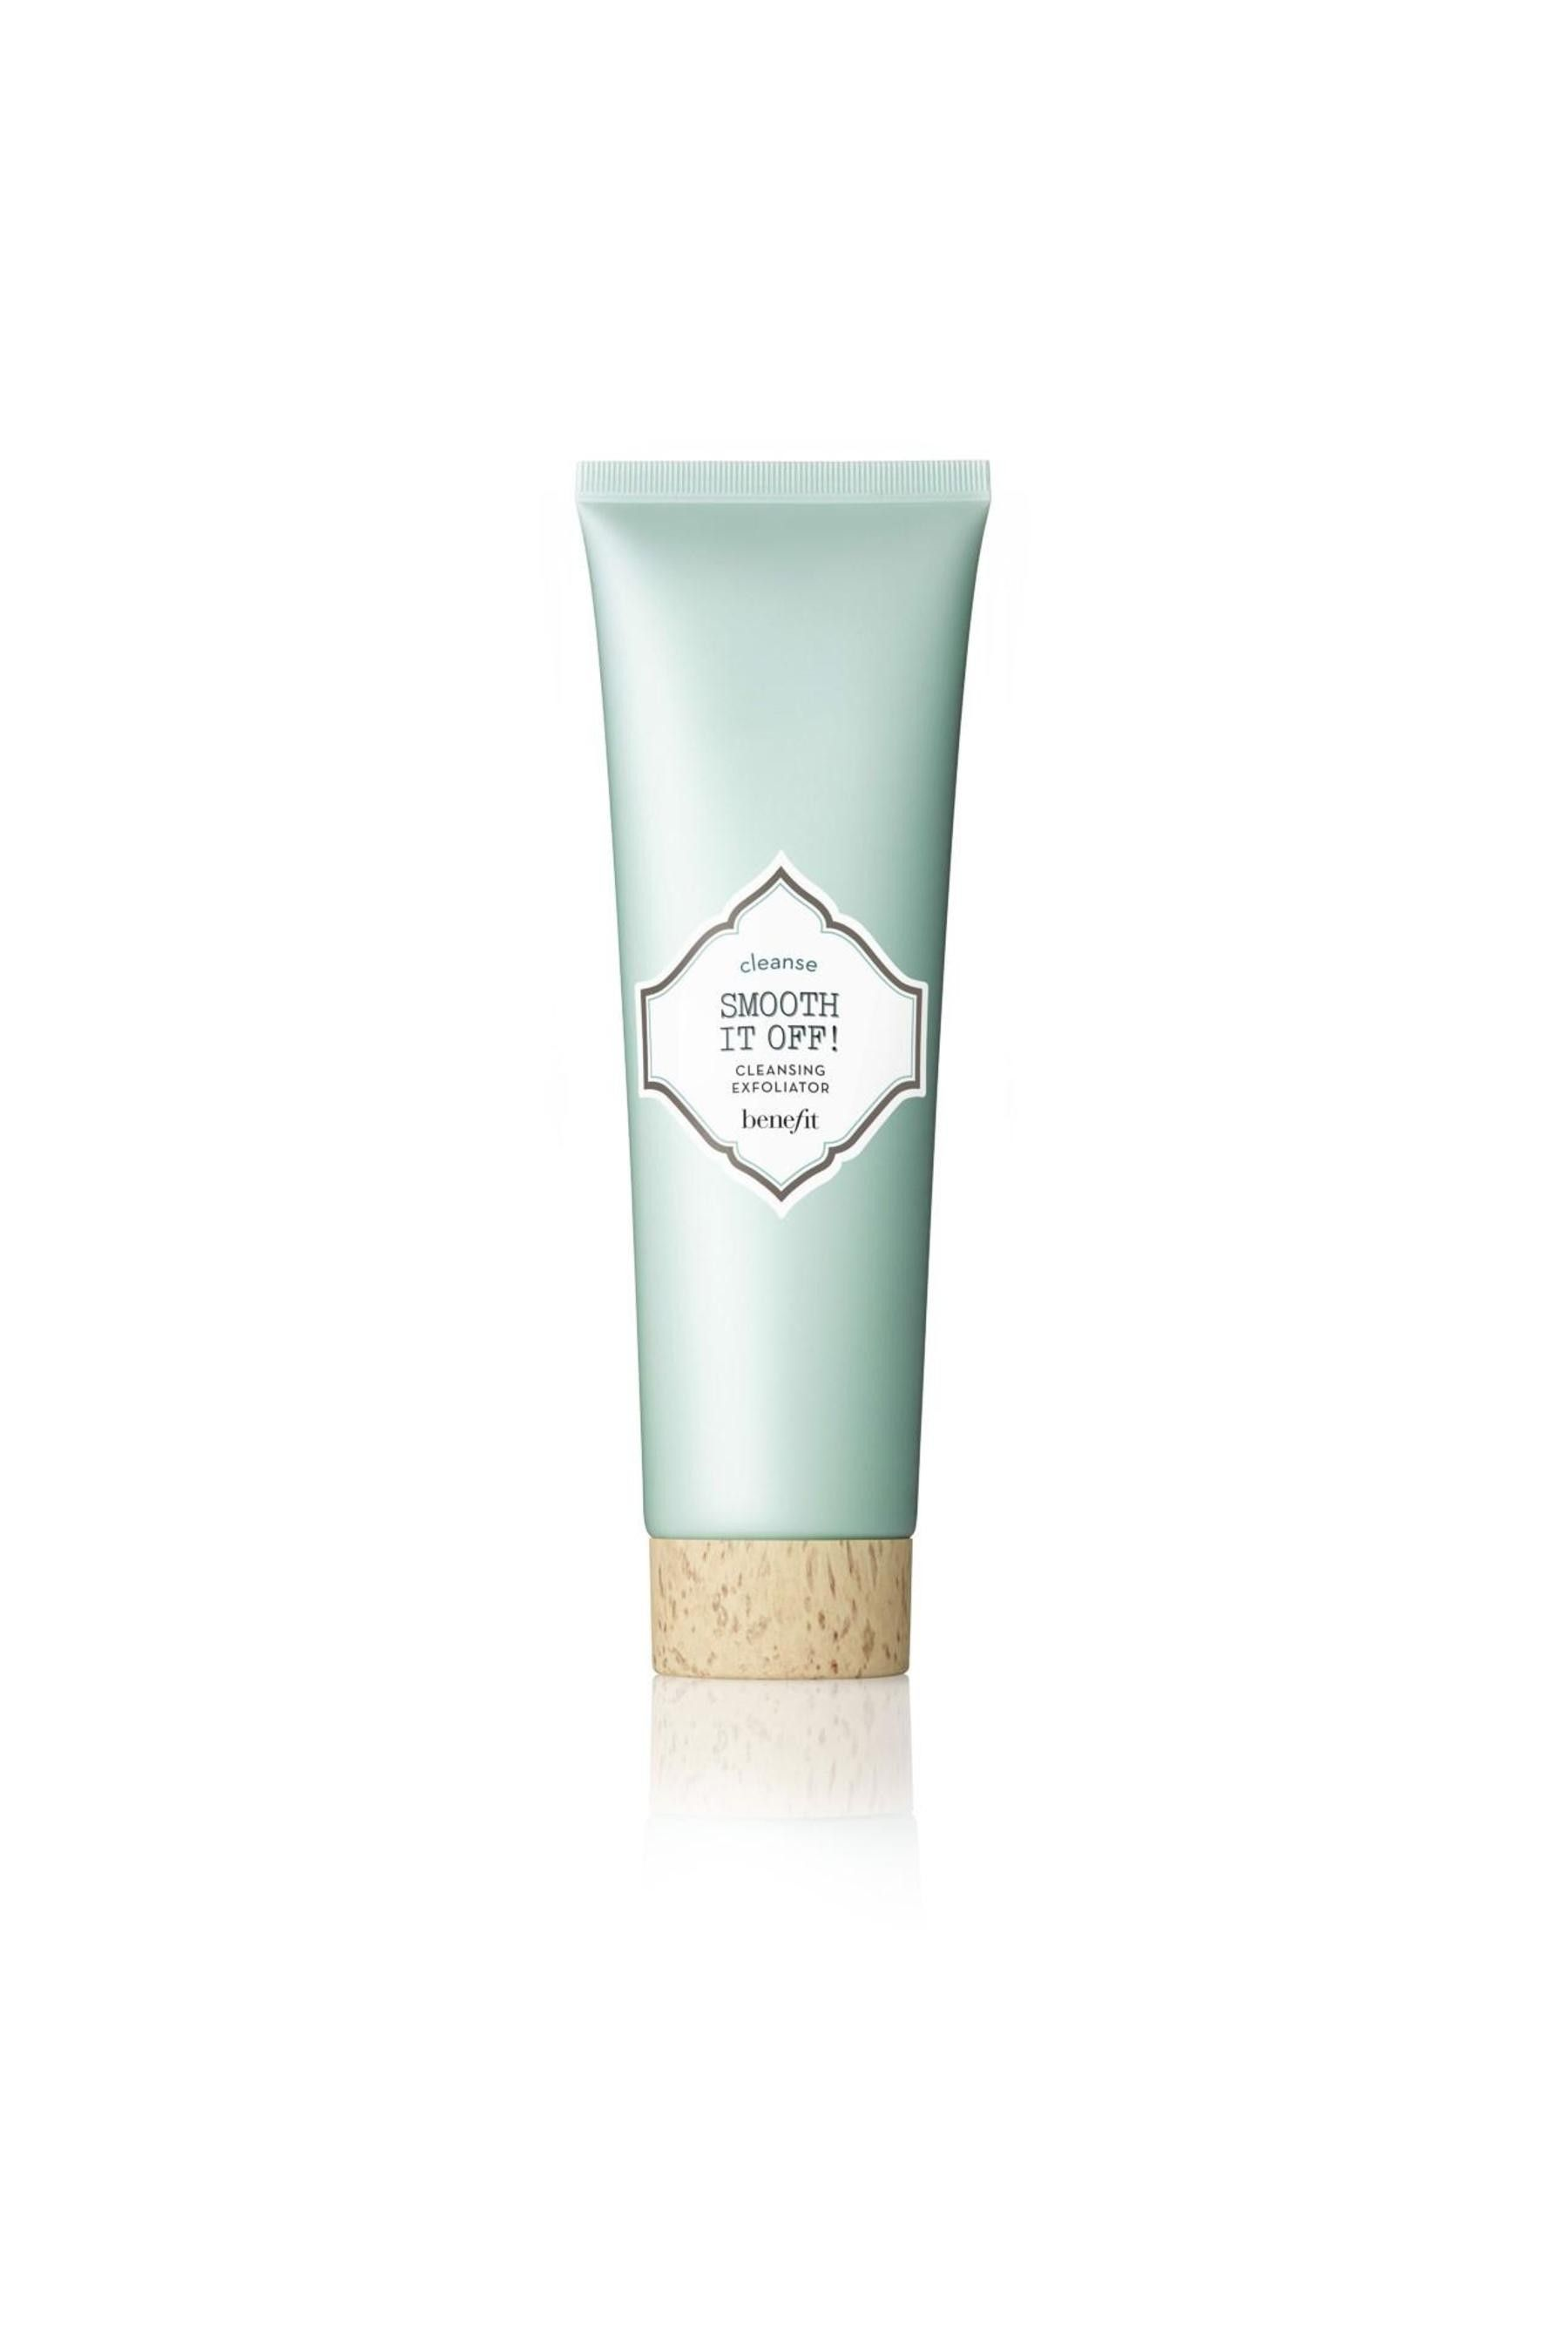 Benefit Smooth It Off Cleansing Exfoliator 127g Gentle Facial Cleanser Exfoliate Face Clear Pores